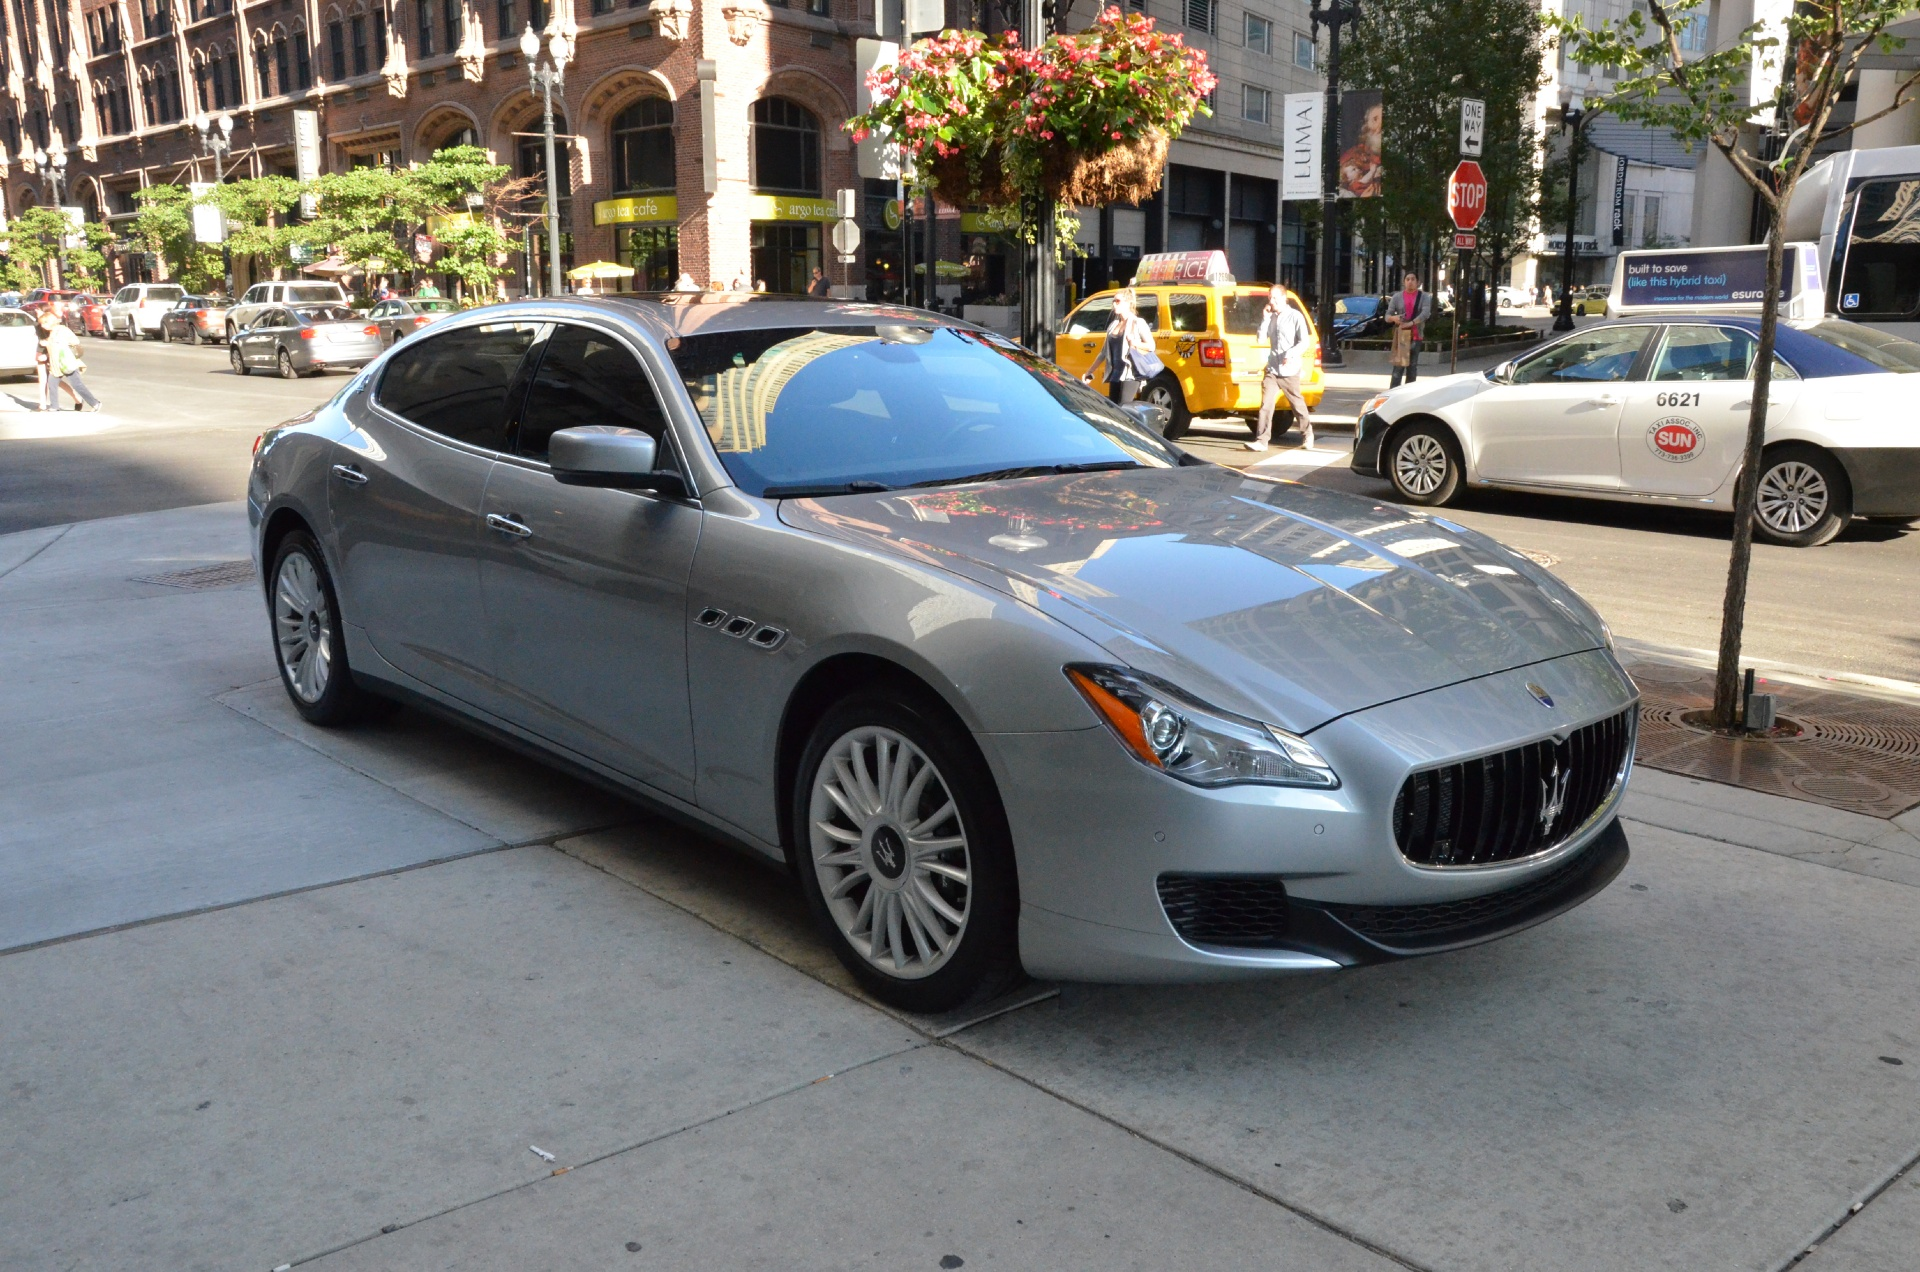 2014 maserati quattroporte gts sport gt s stock b604a for sale near chicago il il maserati. Black Bedroom Furniture Sets. Home Design Ideas